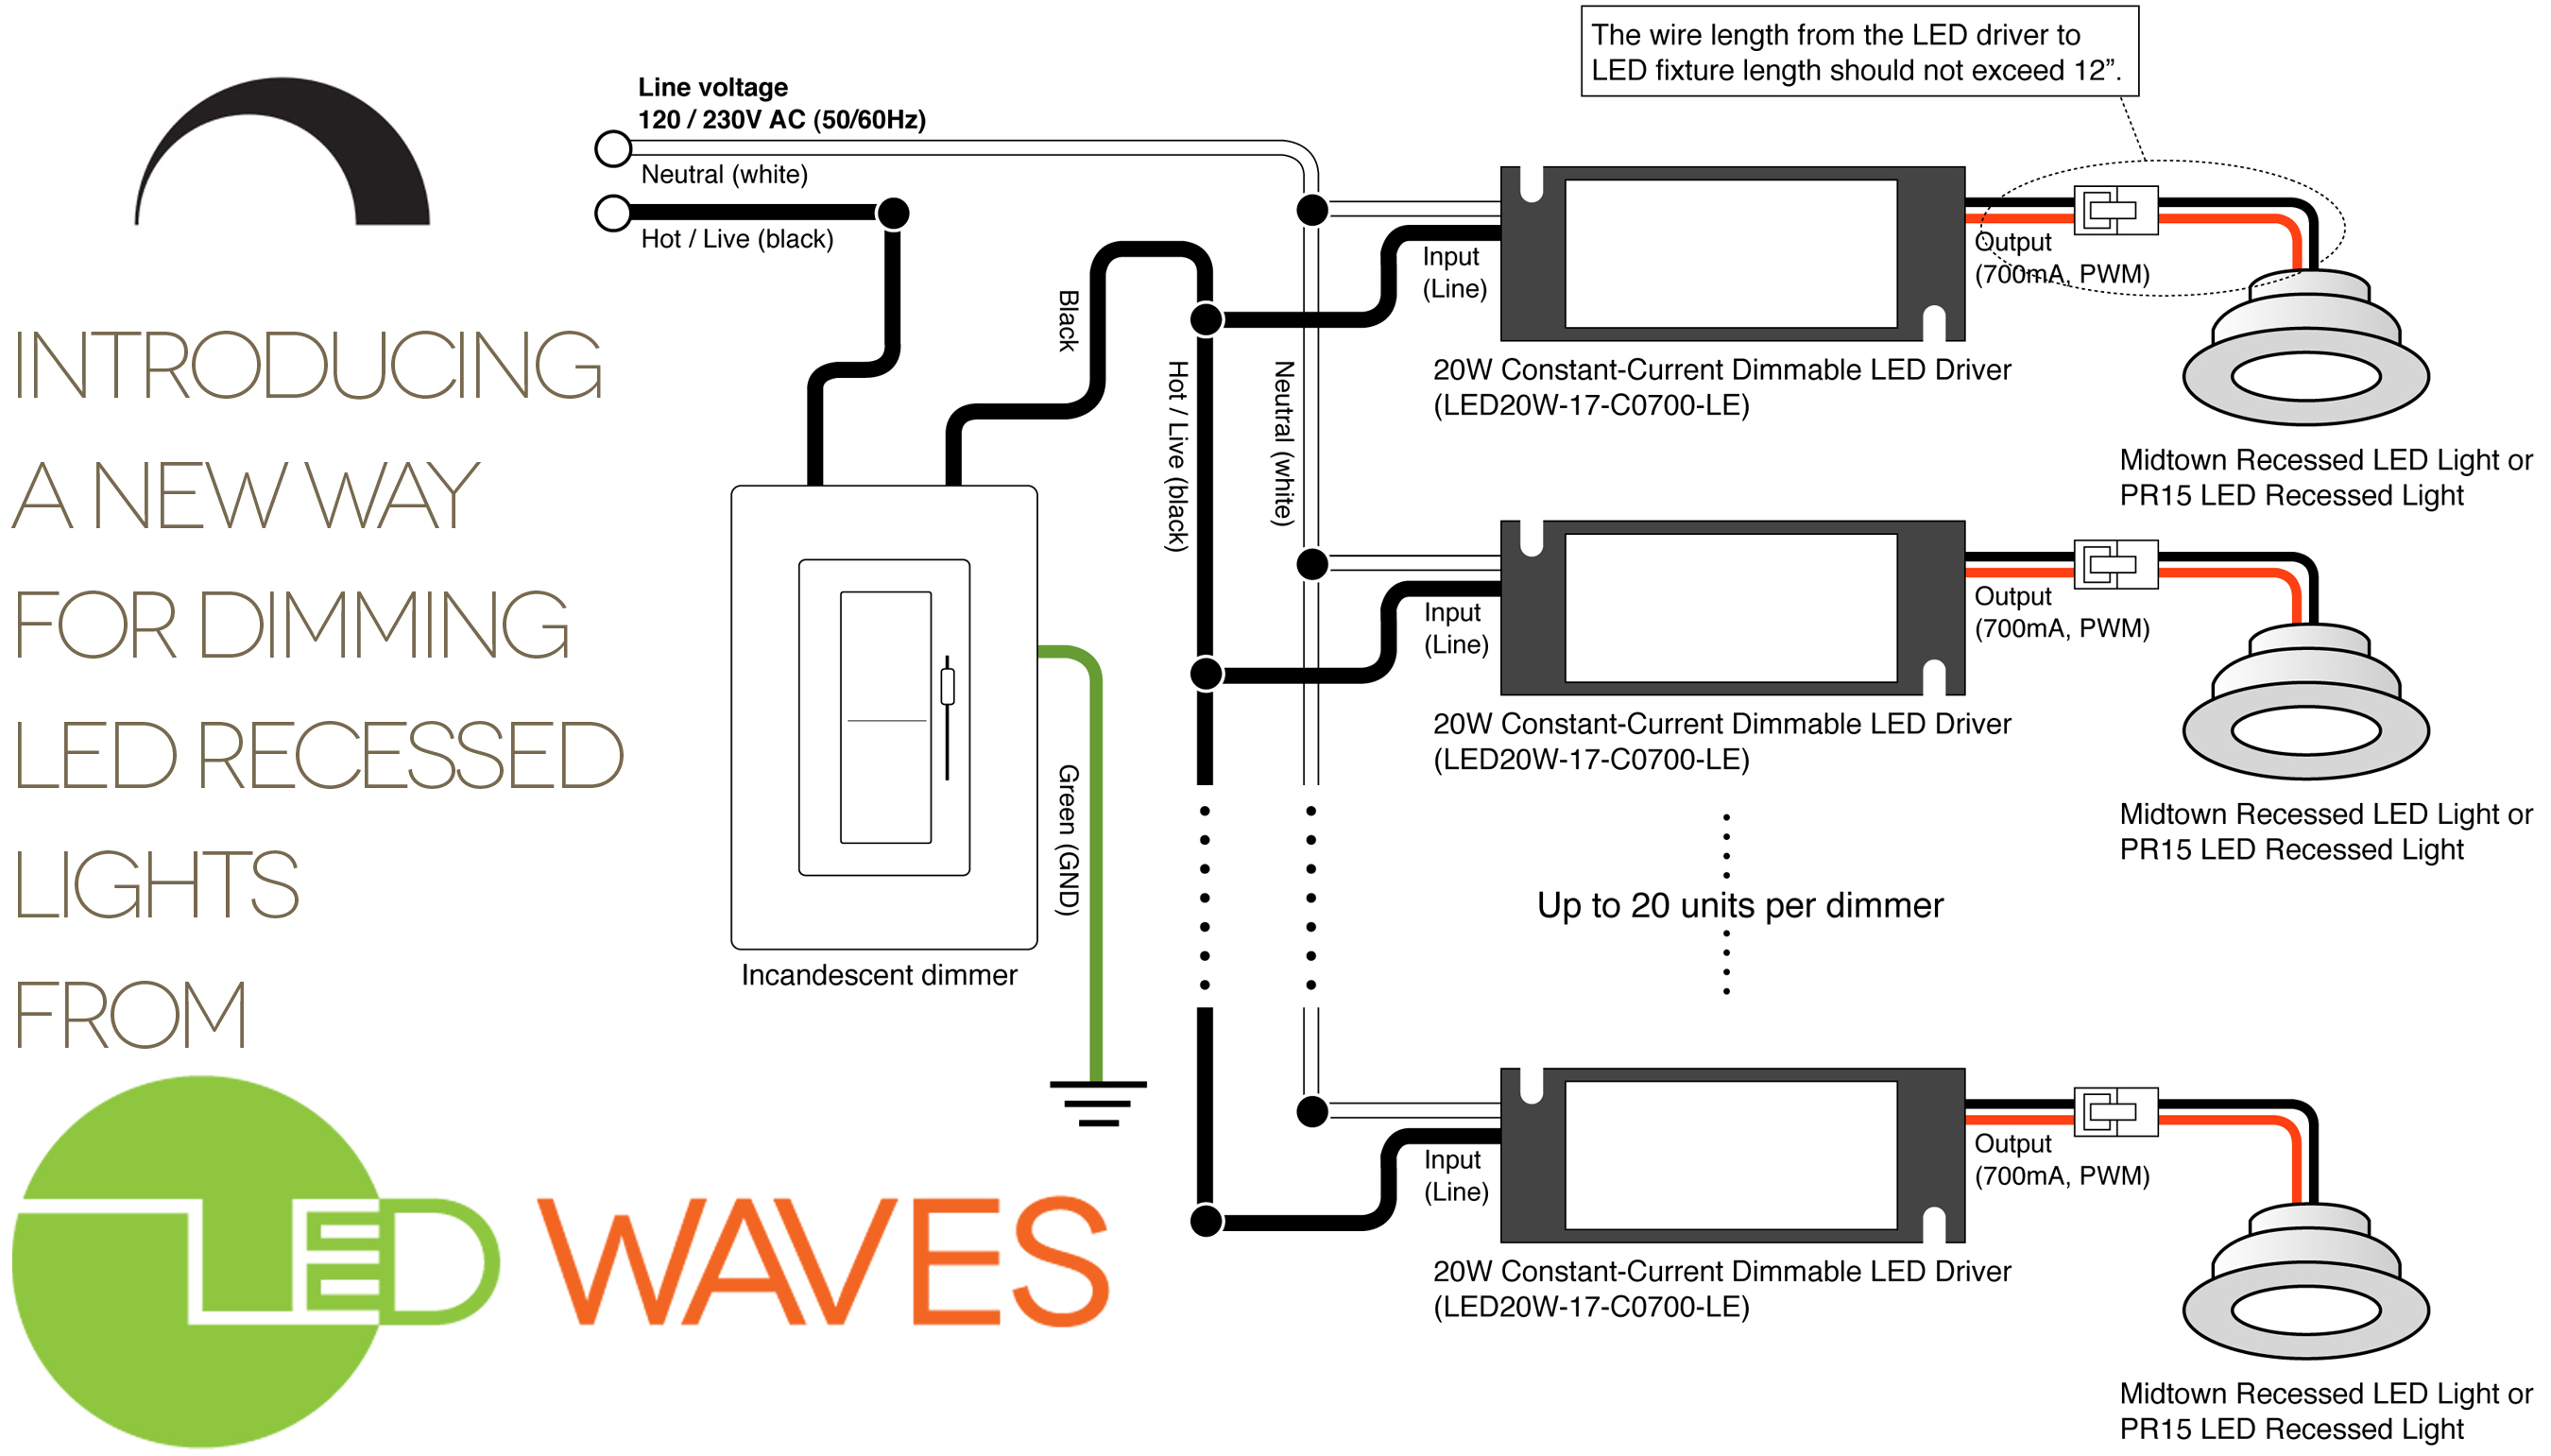 led waves redesigns dimmable led recessed lights wiring led fixtures wiring led can lights in a series or parallel